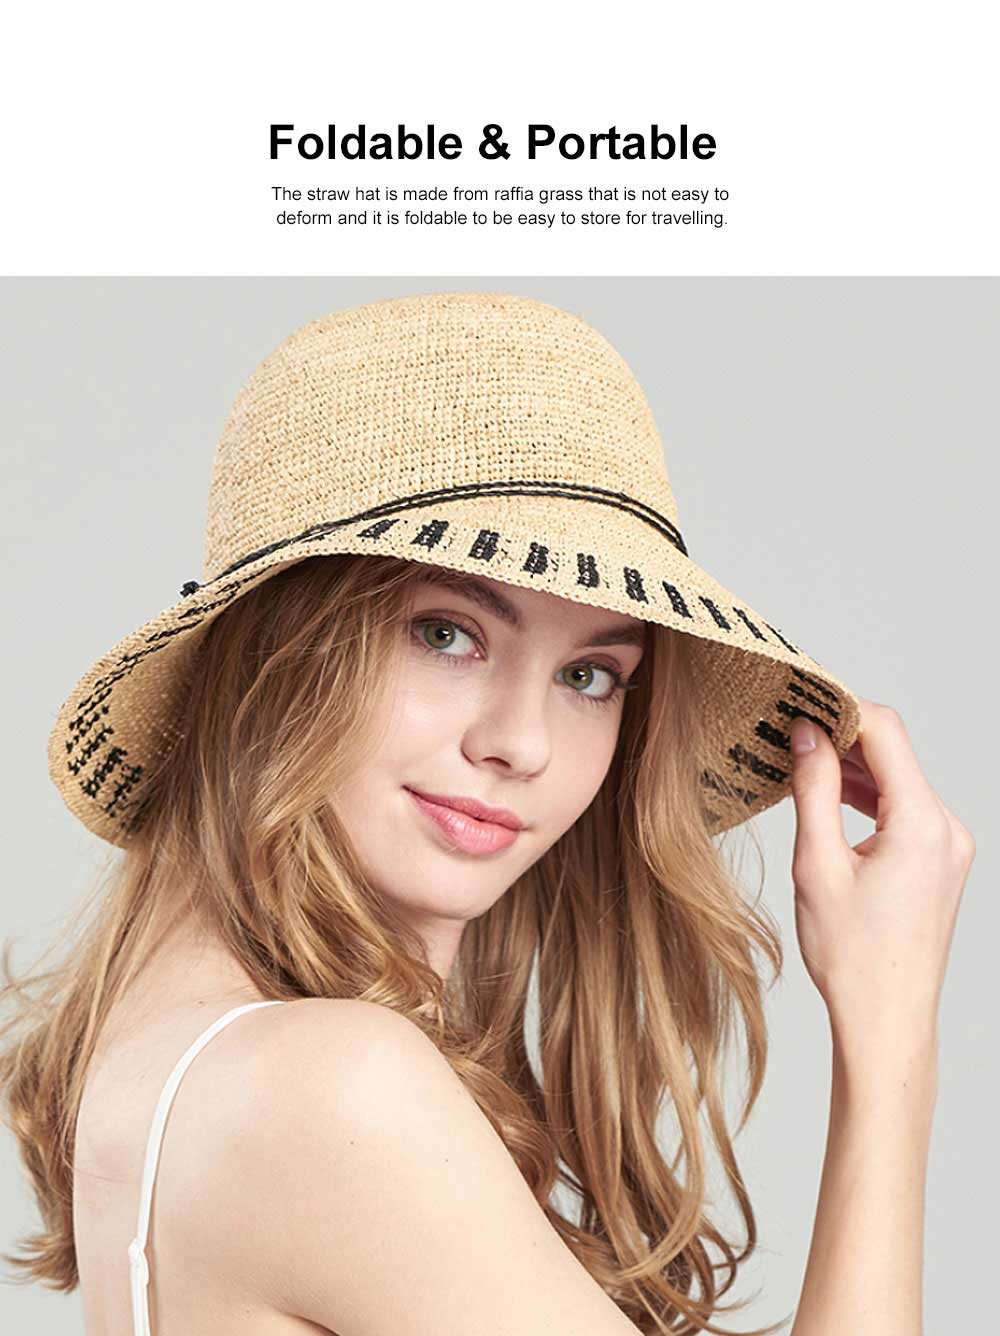 Summer Raffia Straw Hat for Women Large Brim Foldable Beach Hat All-match Sunscreen Bucket Cap Anti-UV Adumbral Cap 2